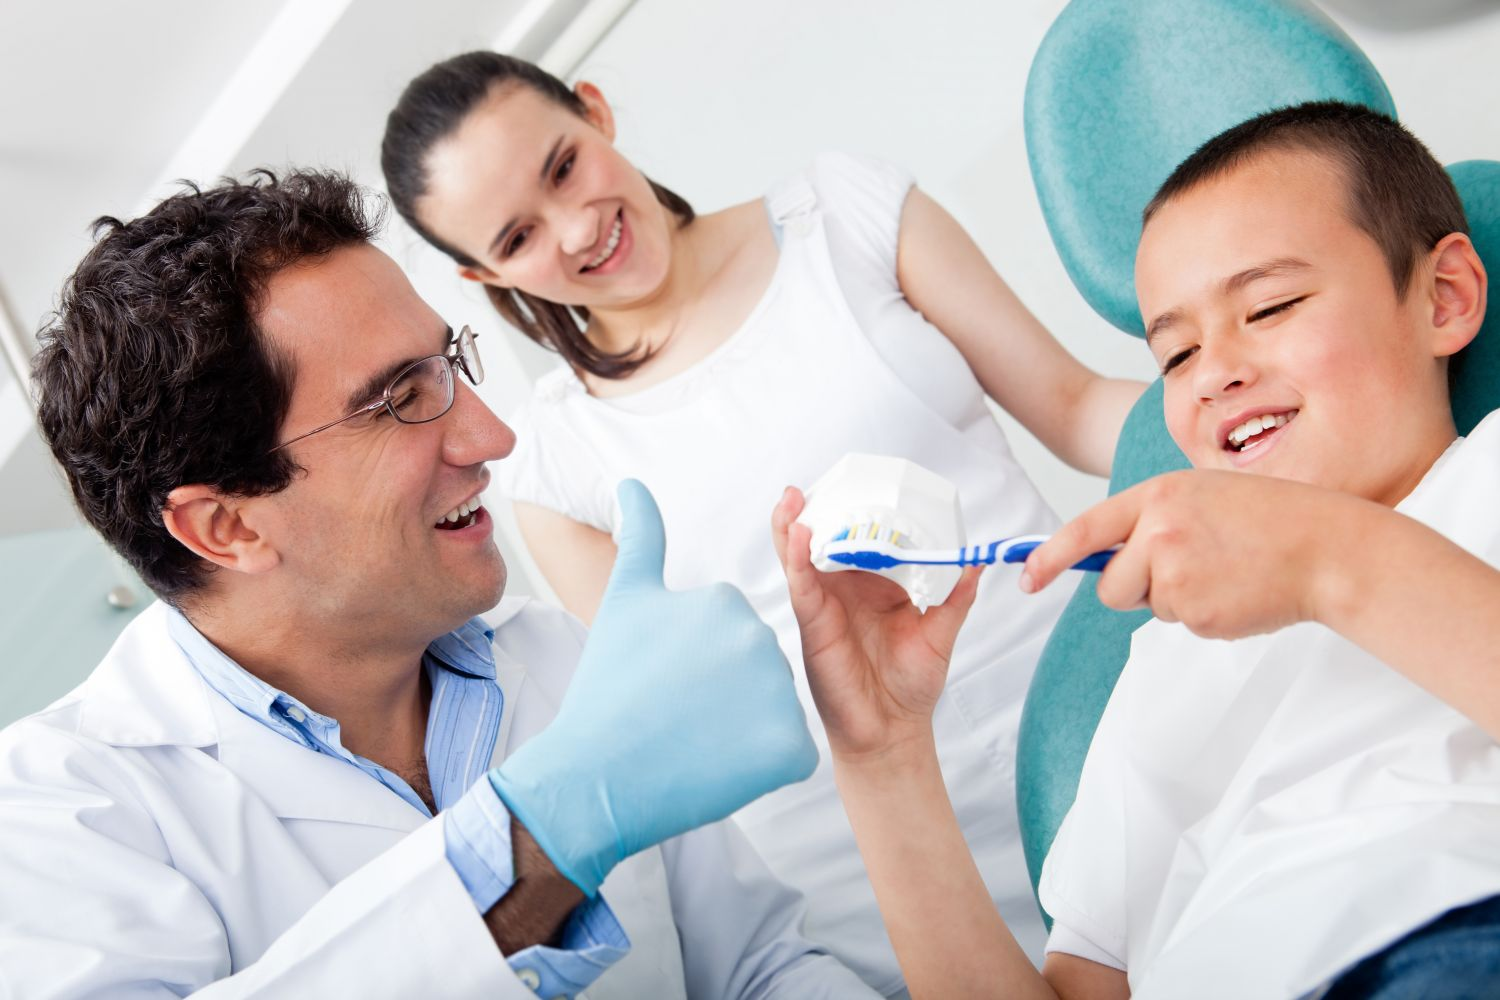 Pediatric dentistry in High Point, NC